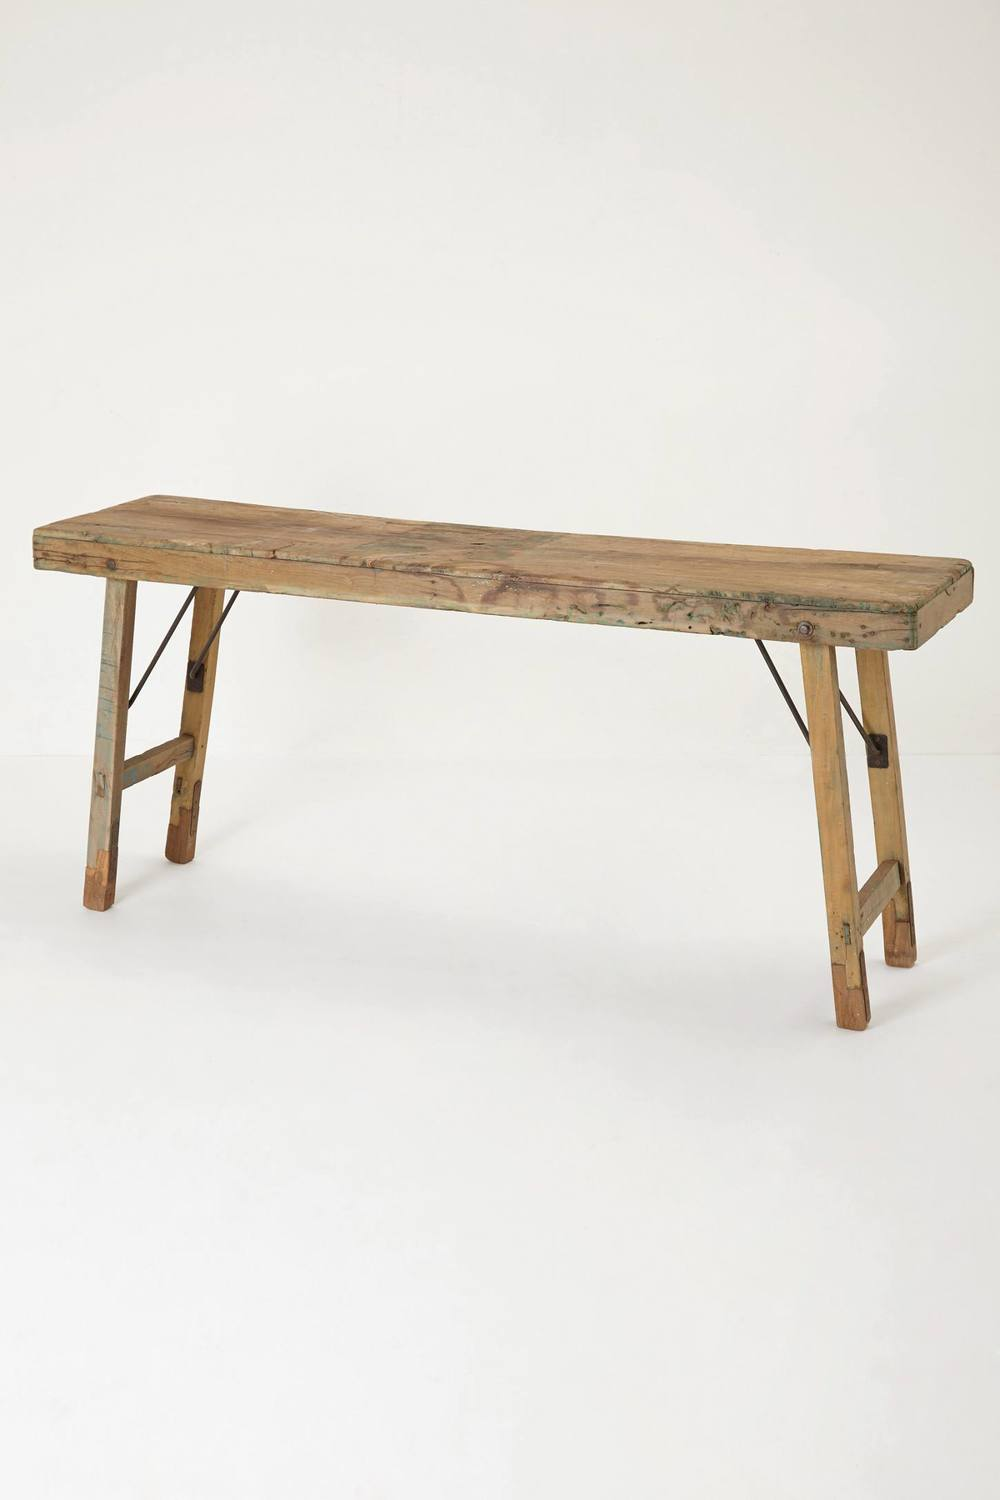 Anthropologie Folding Table